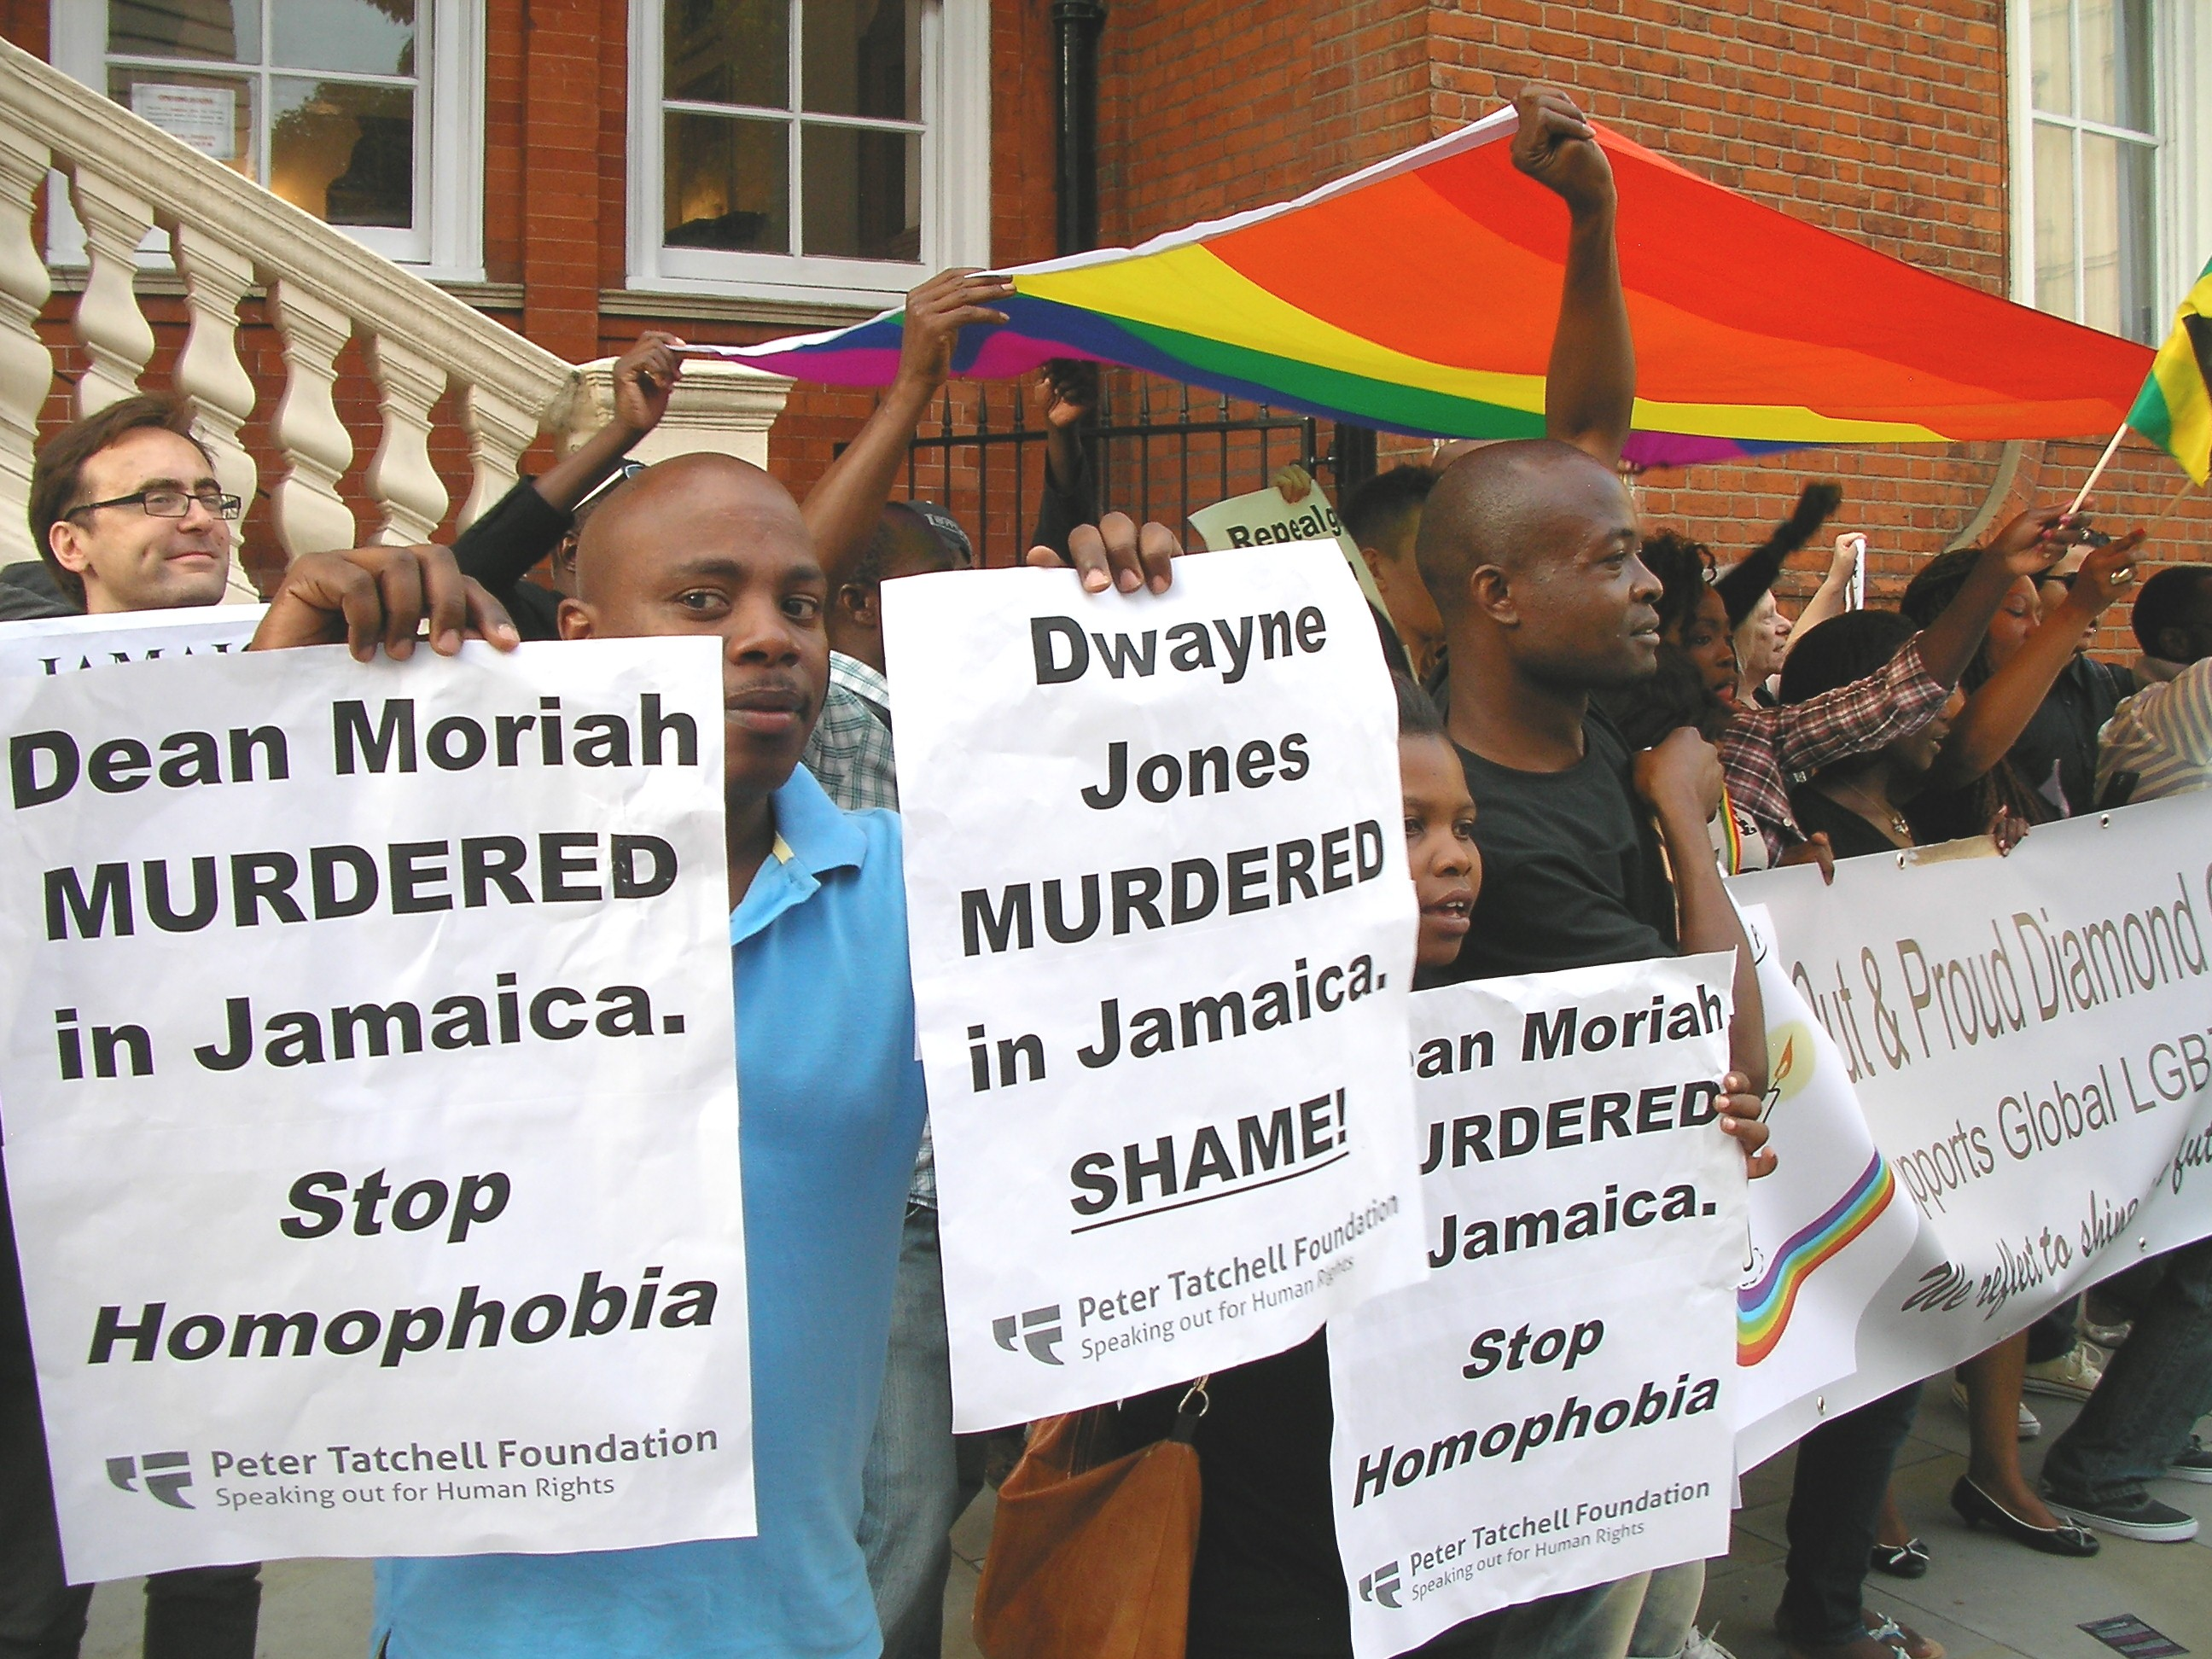 homosexuality in jamaica Answer 1 of 11: i'm planning a trip to jamaica and some of my friends are gay they have heard that jamaica is not gay friendly is this true and if so to what extent.